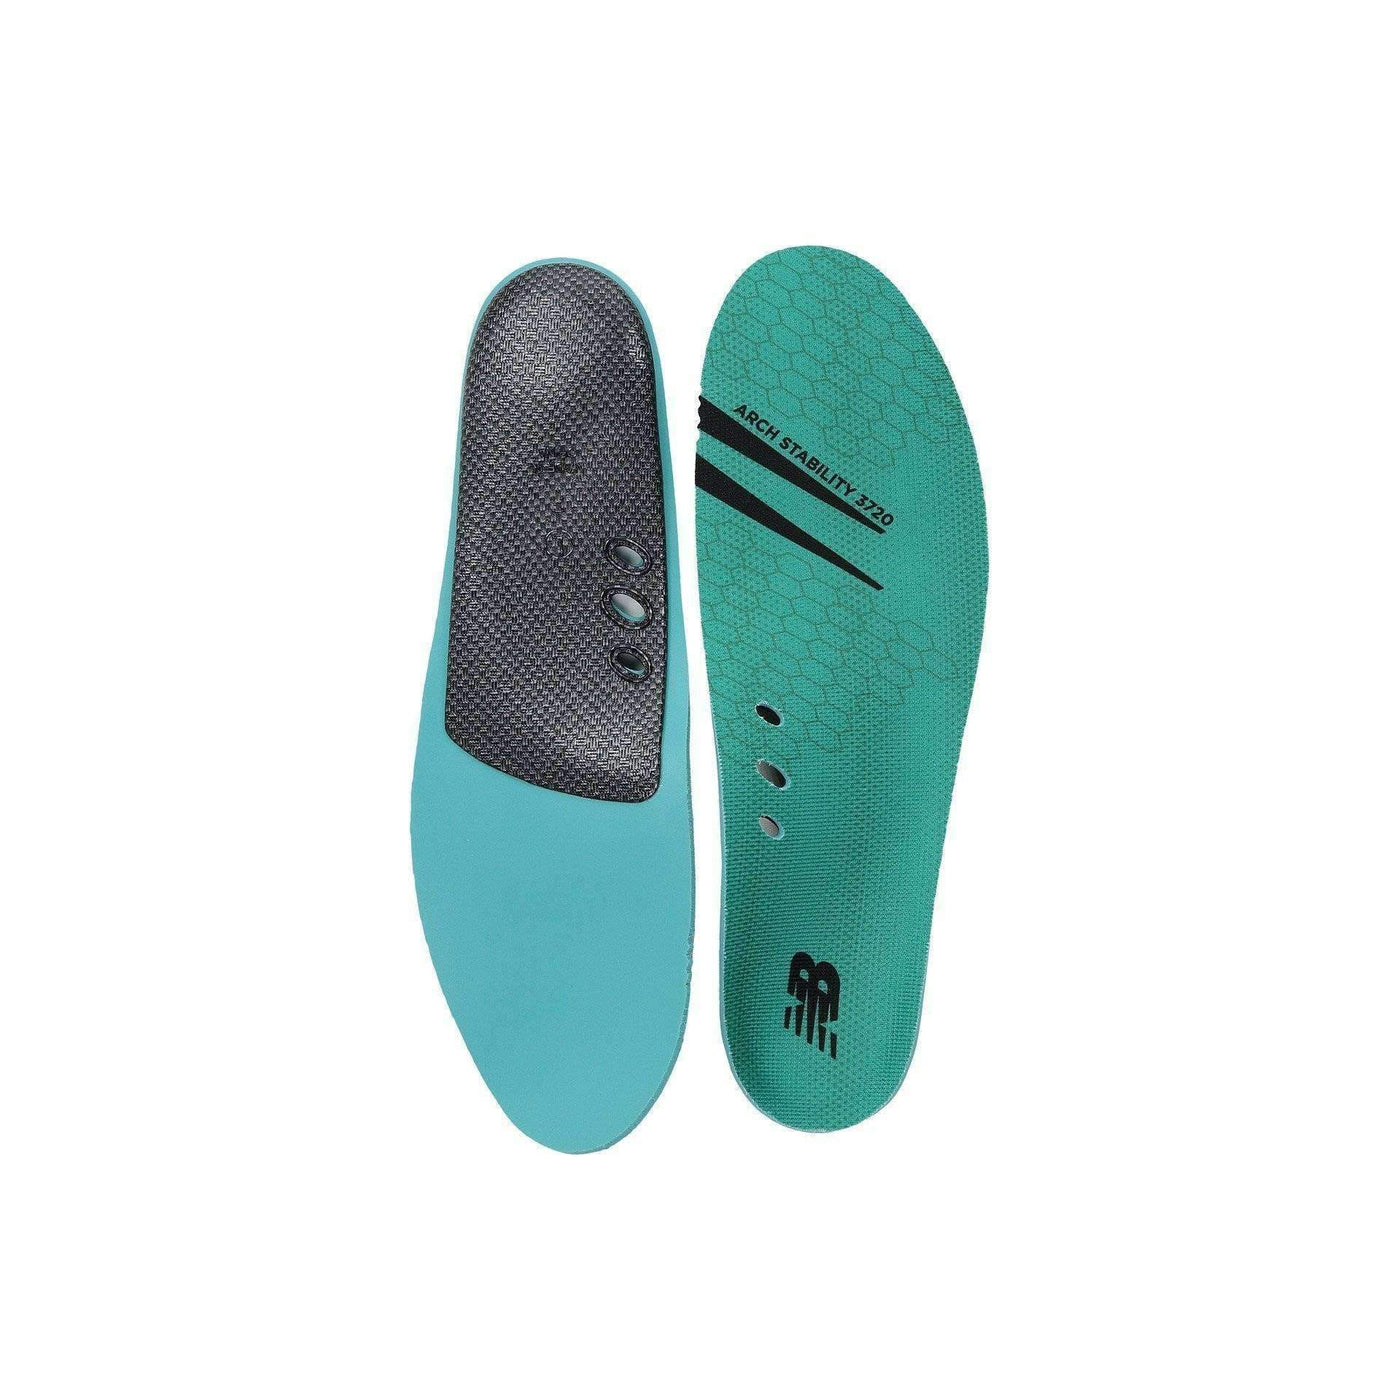 new balance insoles 3720